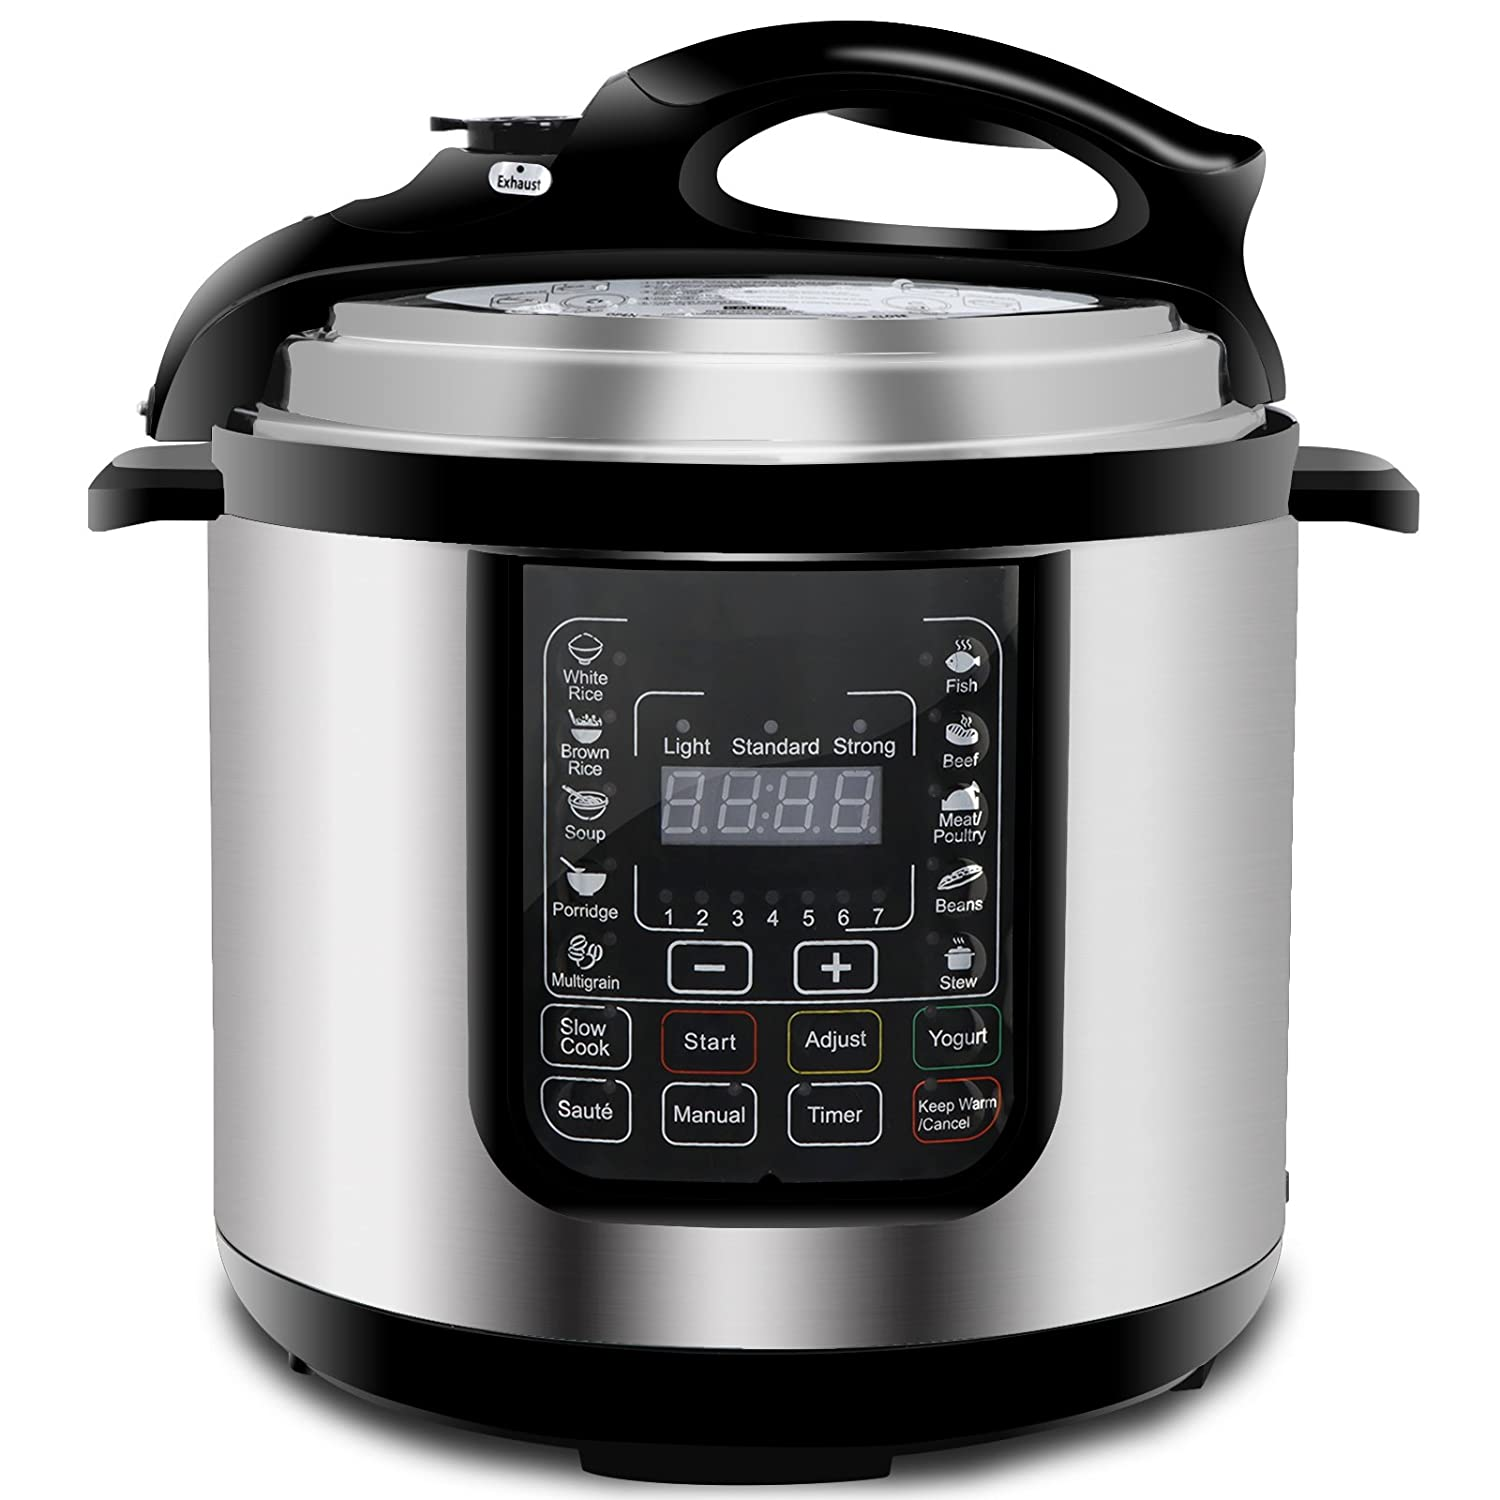 ZENY 6 Qt 7-in-1 Multi- Use Programmable Pressure Cooker Stainless Steel Electric Pressure Cooker 1000W w/LED Display Screen, Rice Cooker, Sauté, Steamer, Slow Cooker, Yogurt Maker & Food Warmer